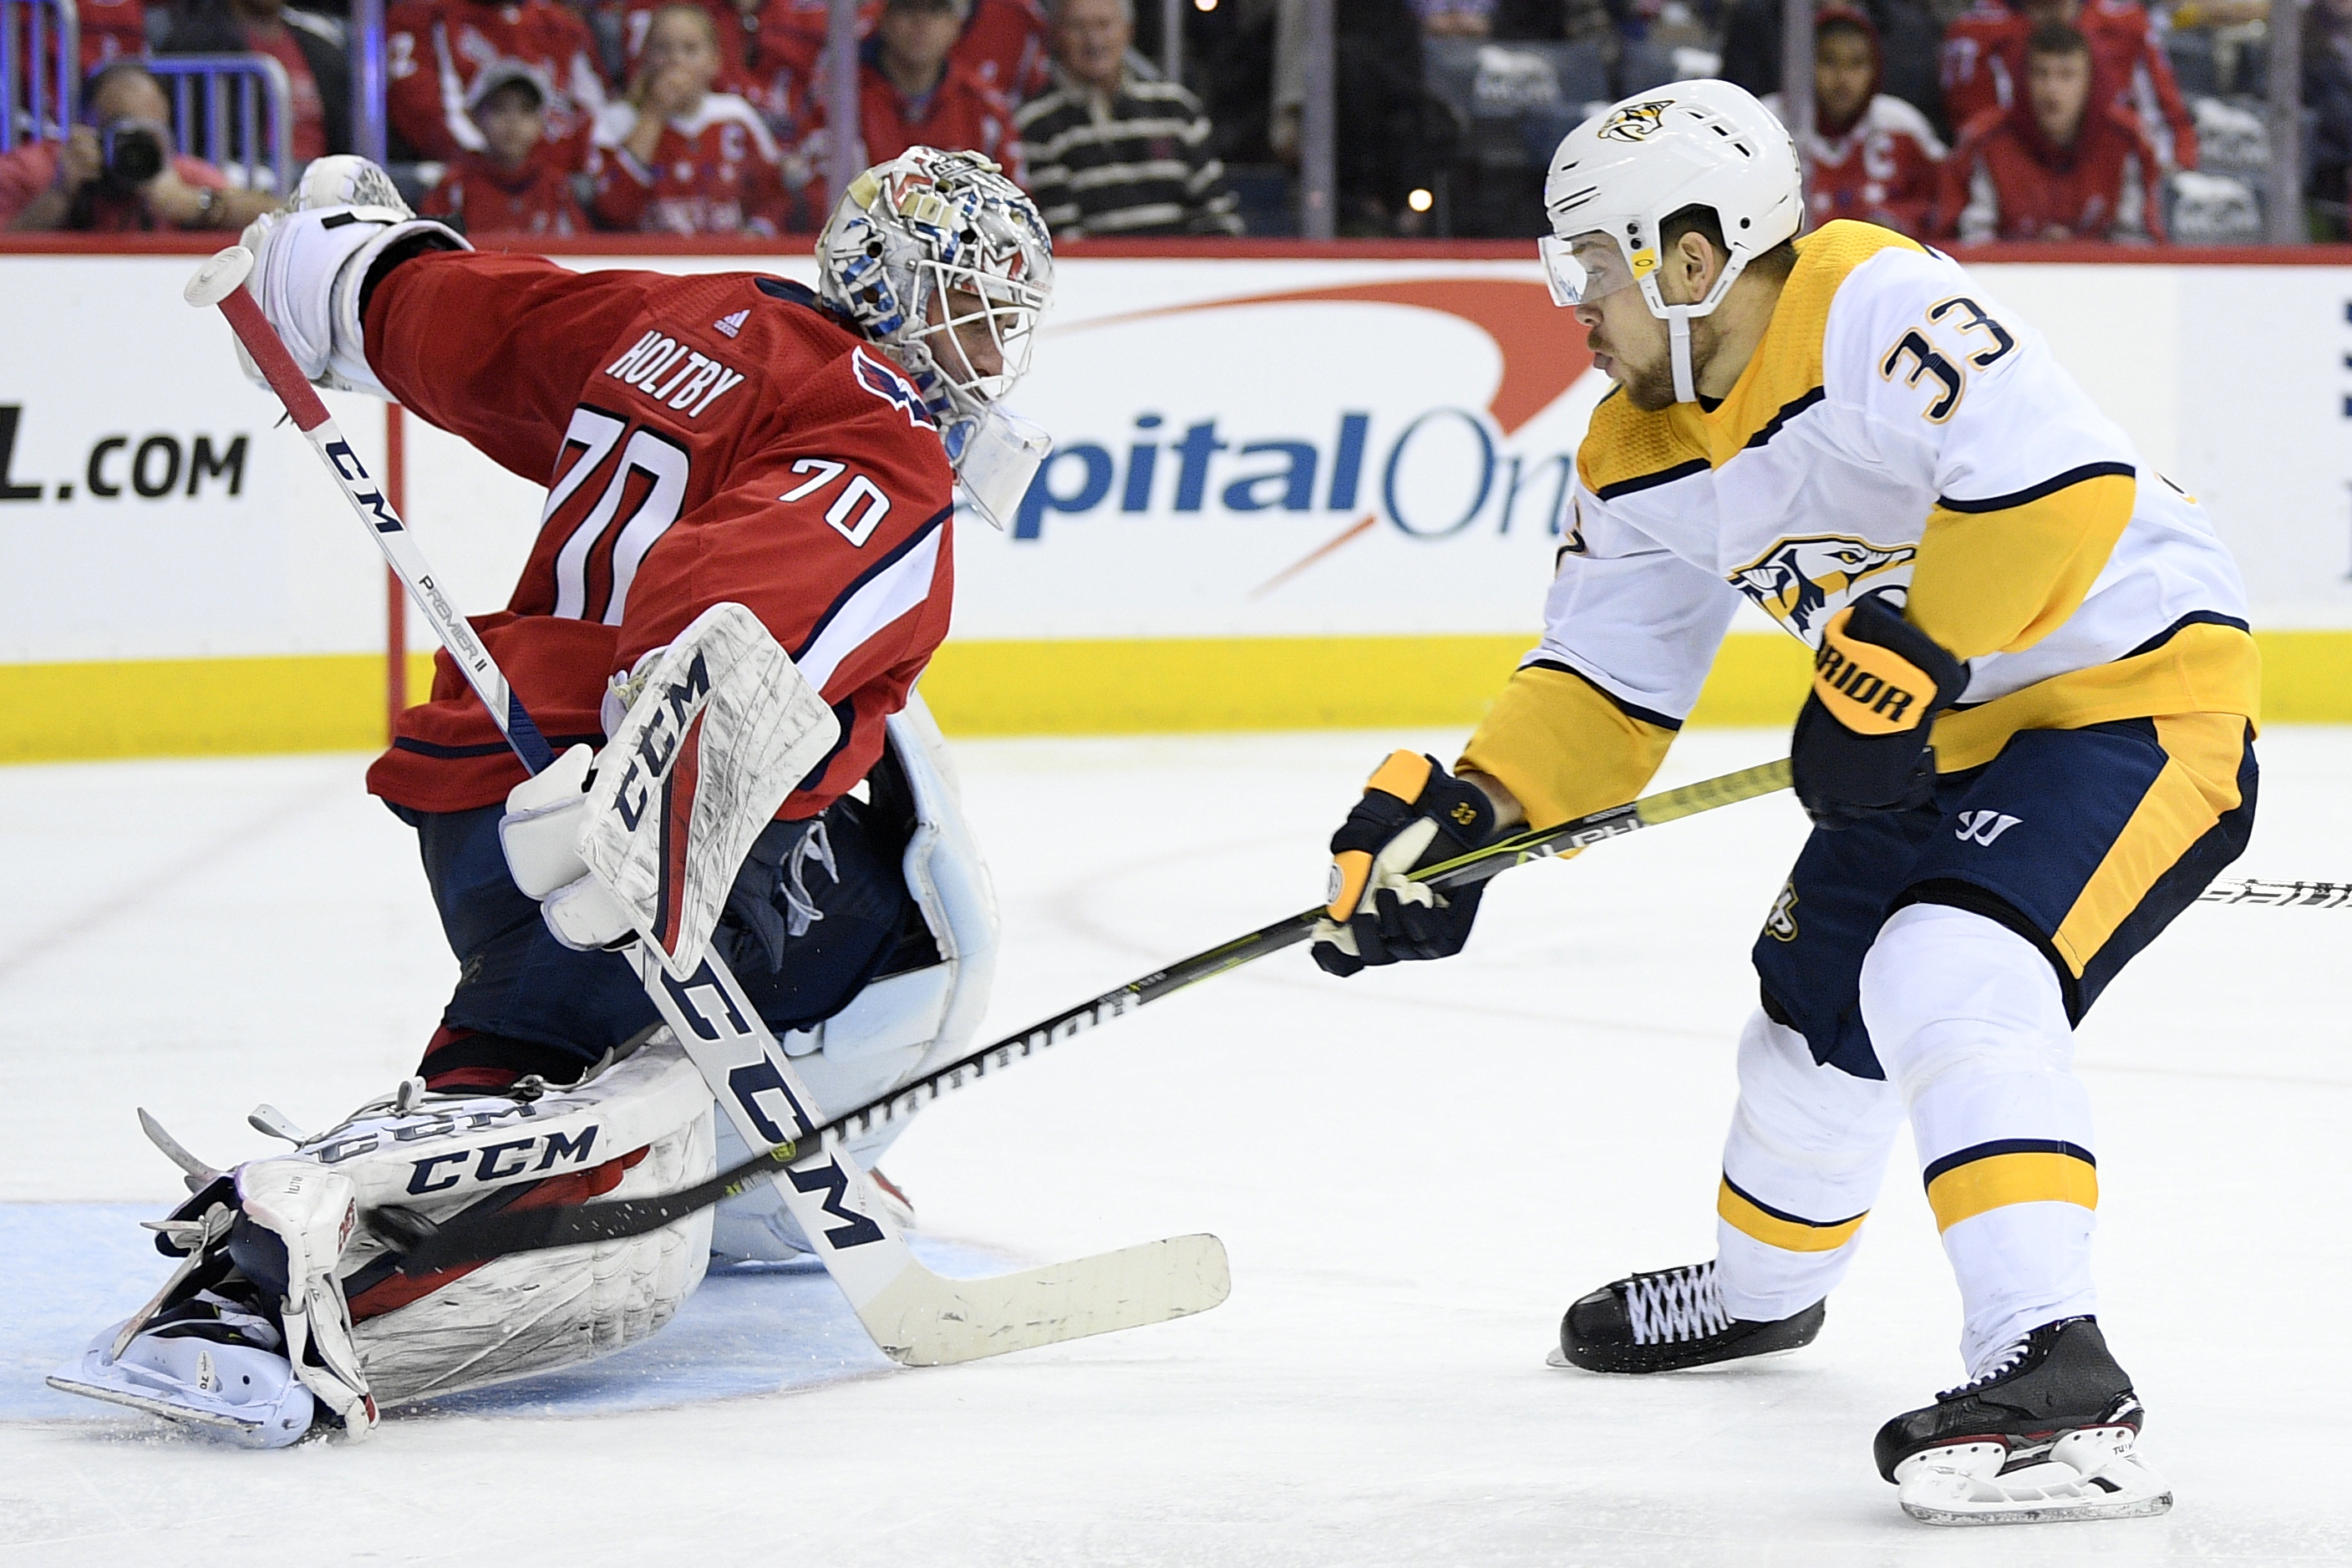 638ac4f308f Predators power past Capitals in early afternoon battle - Washington ...